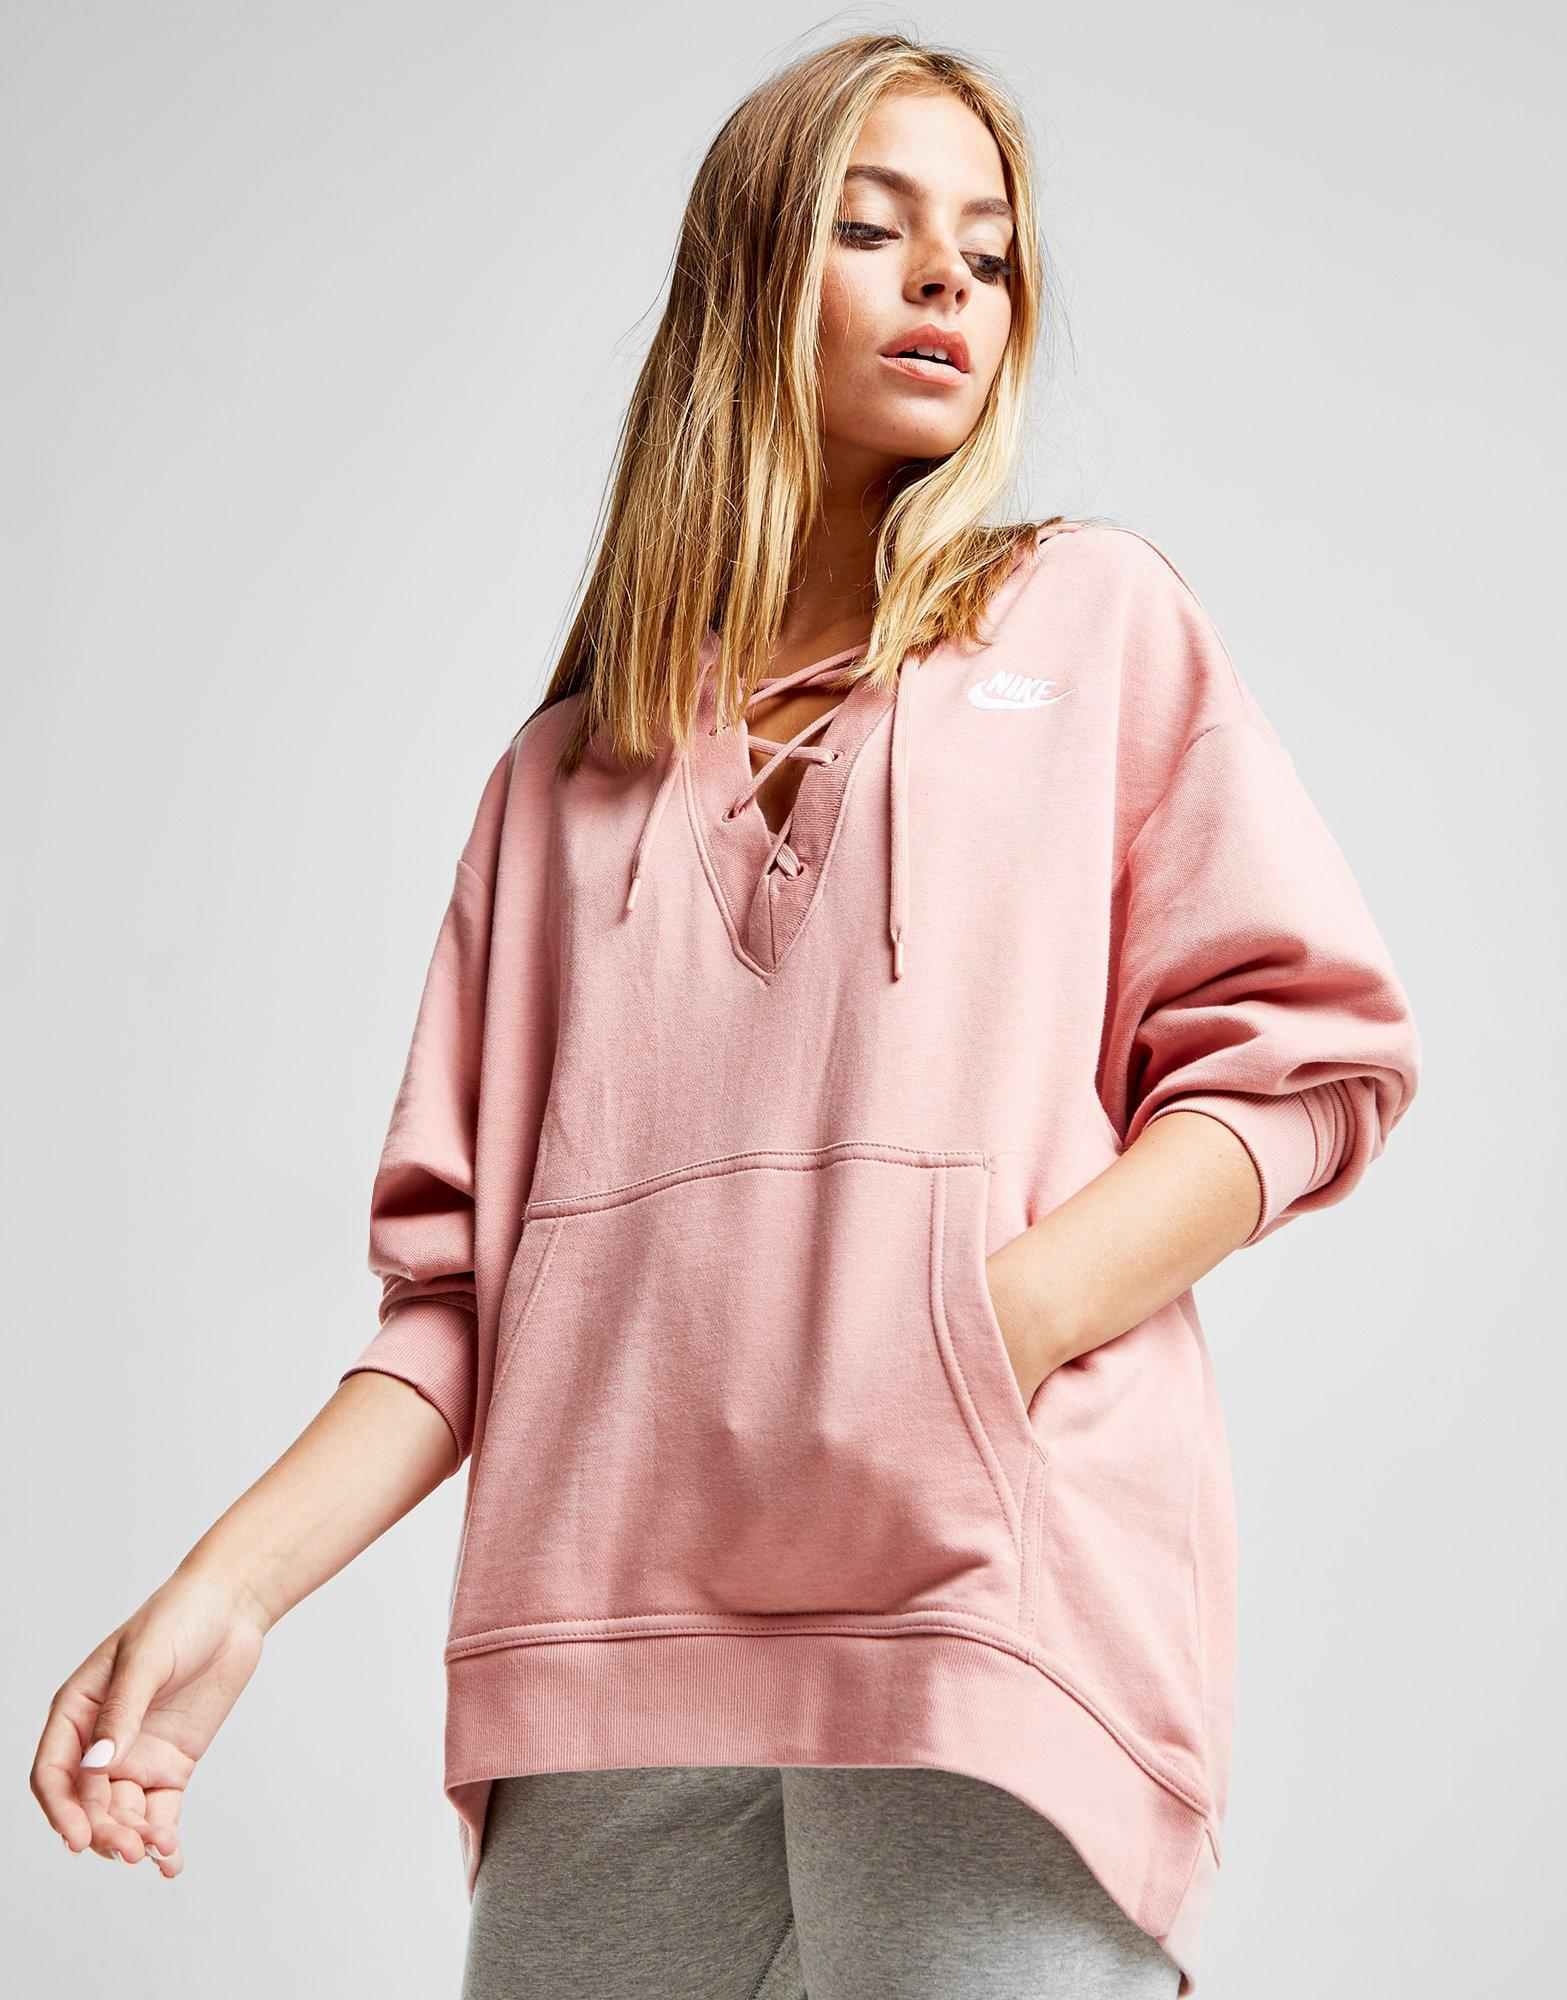 f1ebd18f9b92 Lyst - Nike Lace Up Hoodie in Pink